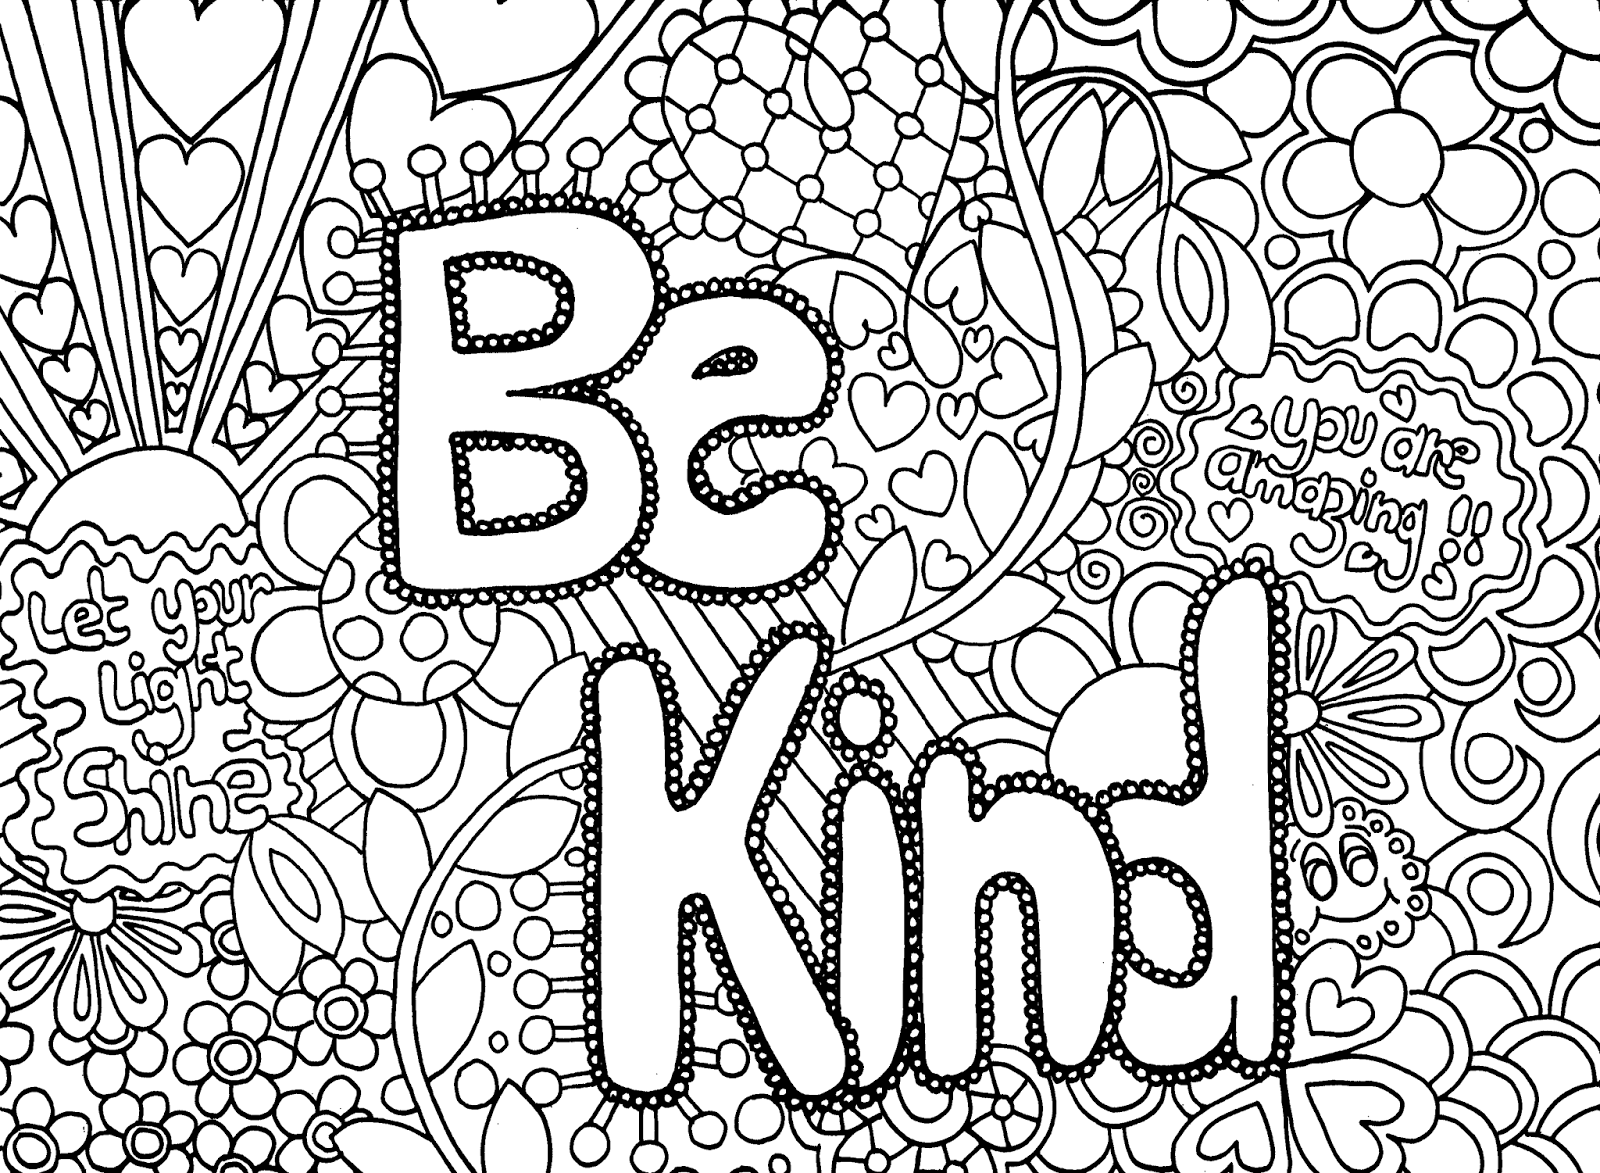 Printable Coloring Pages Adults 35 With Printable Coloring Pages